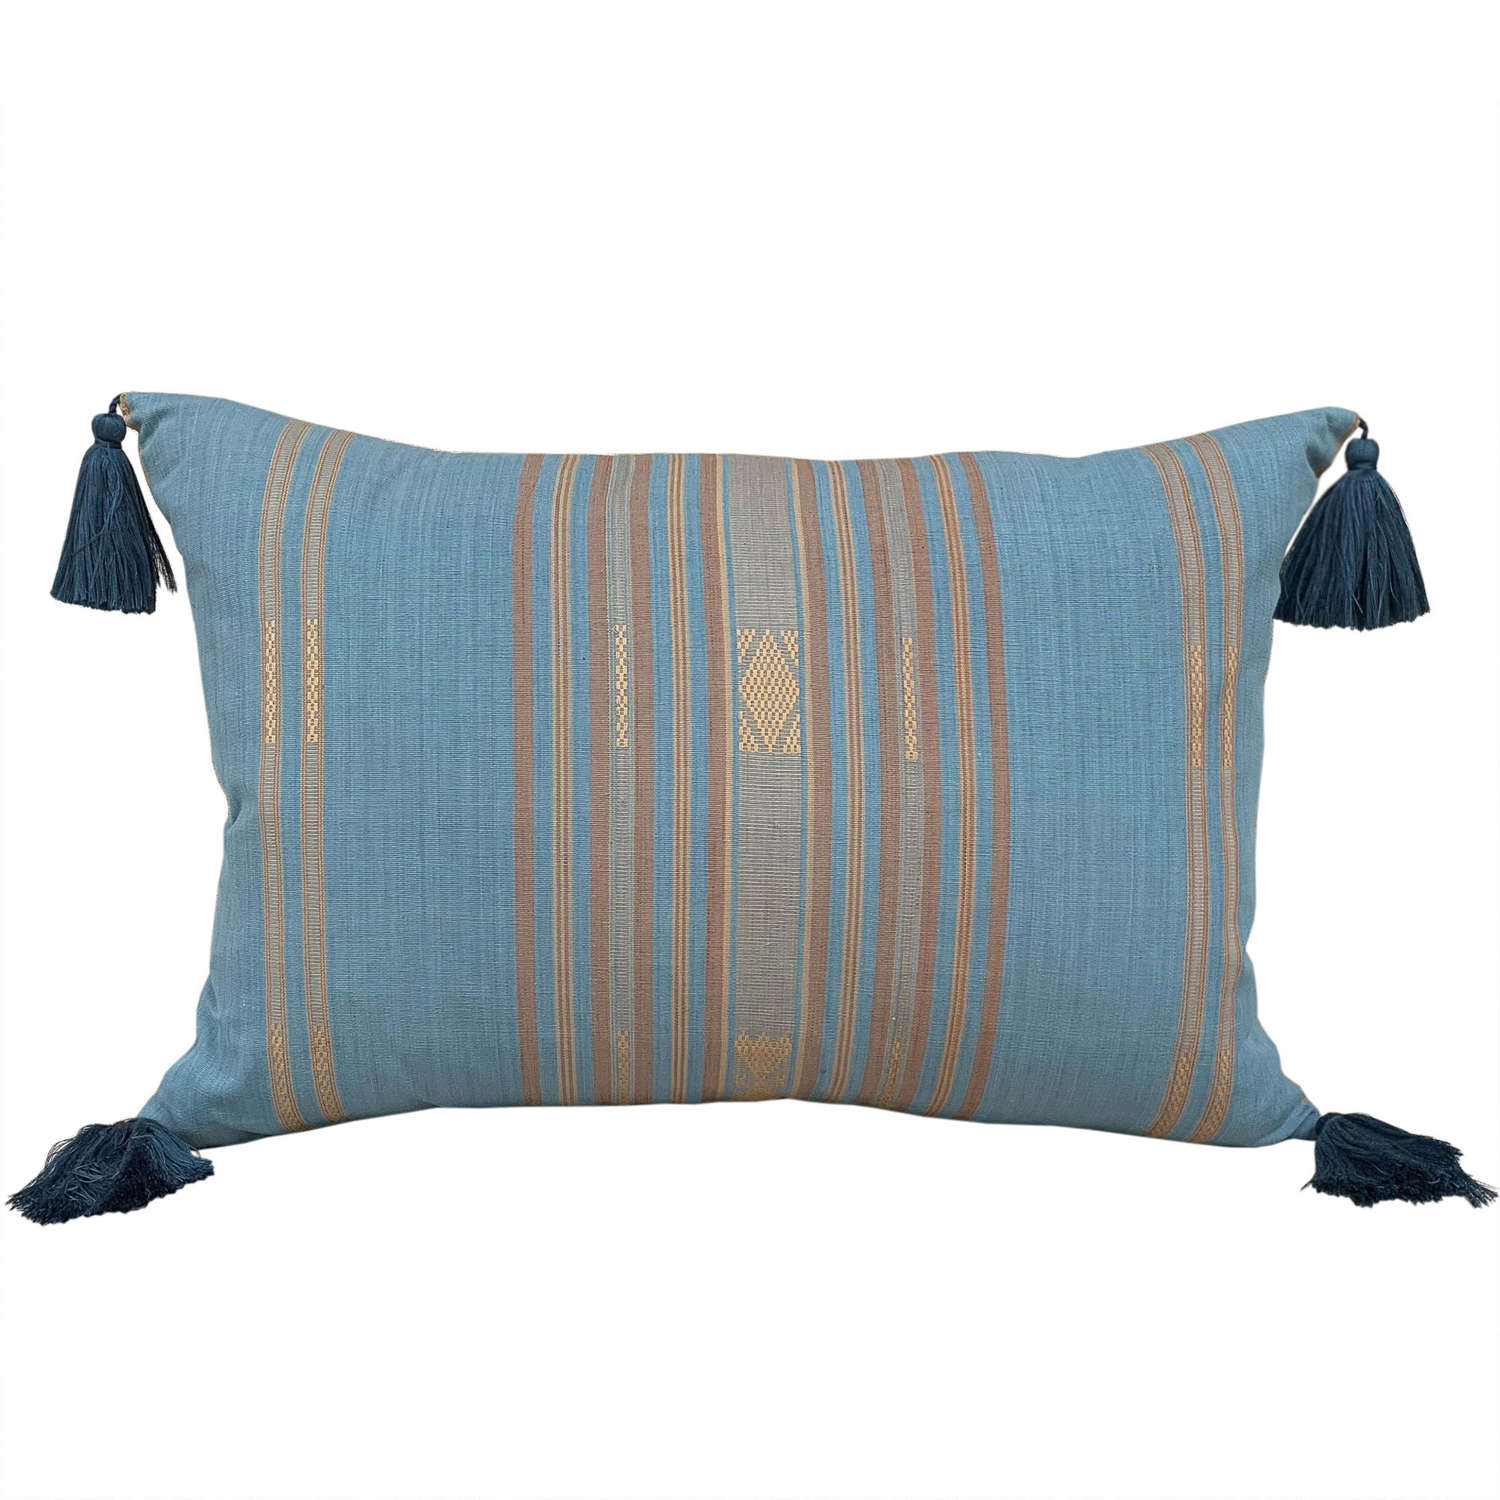 Pastel blue Lombok cushions with tassels